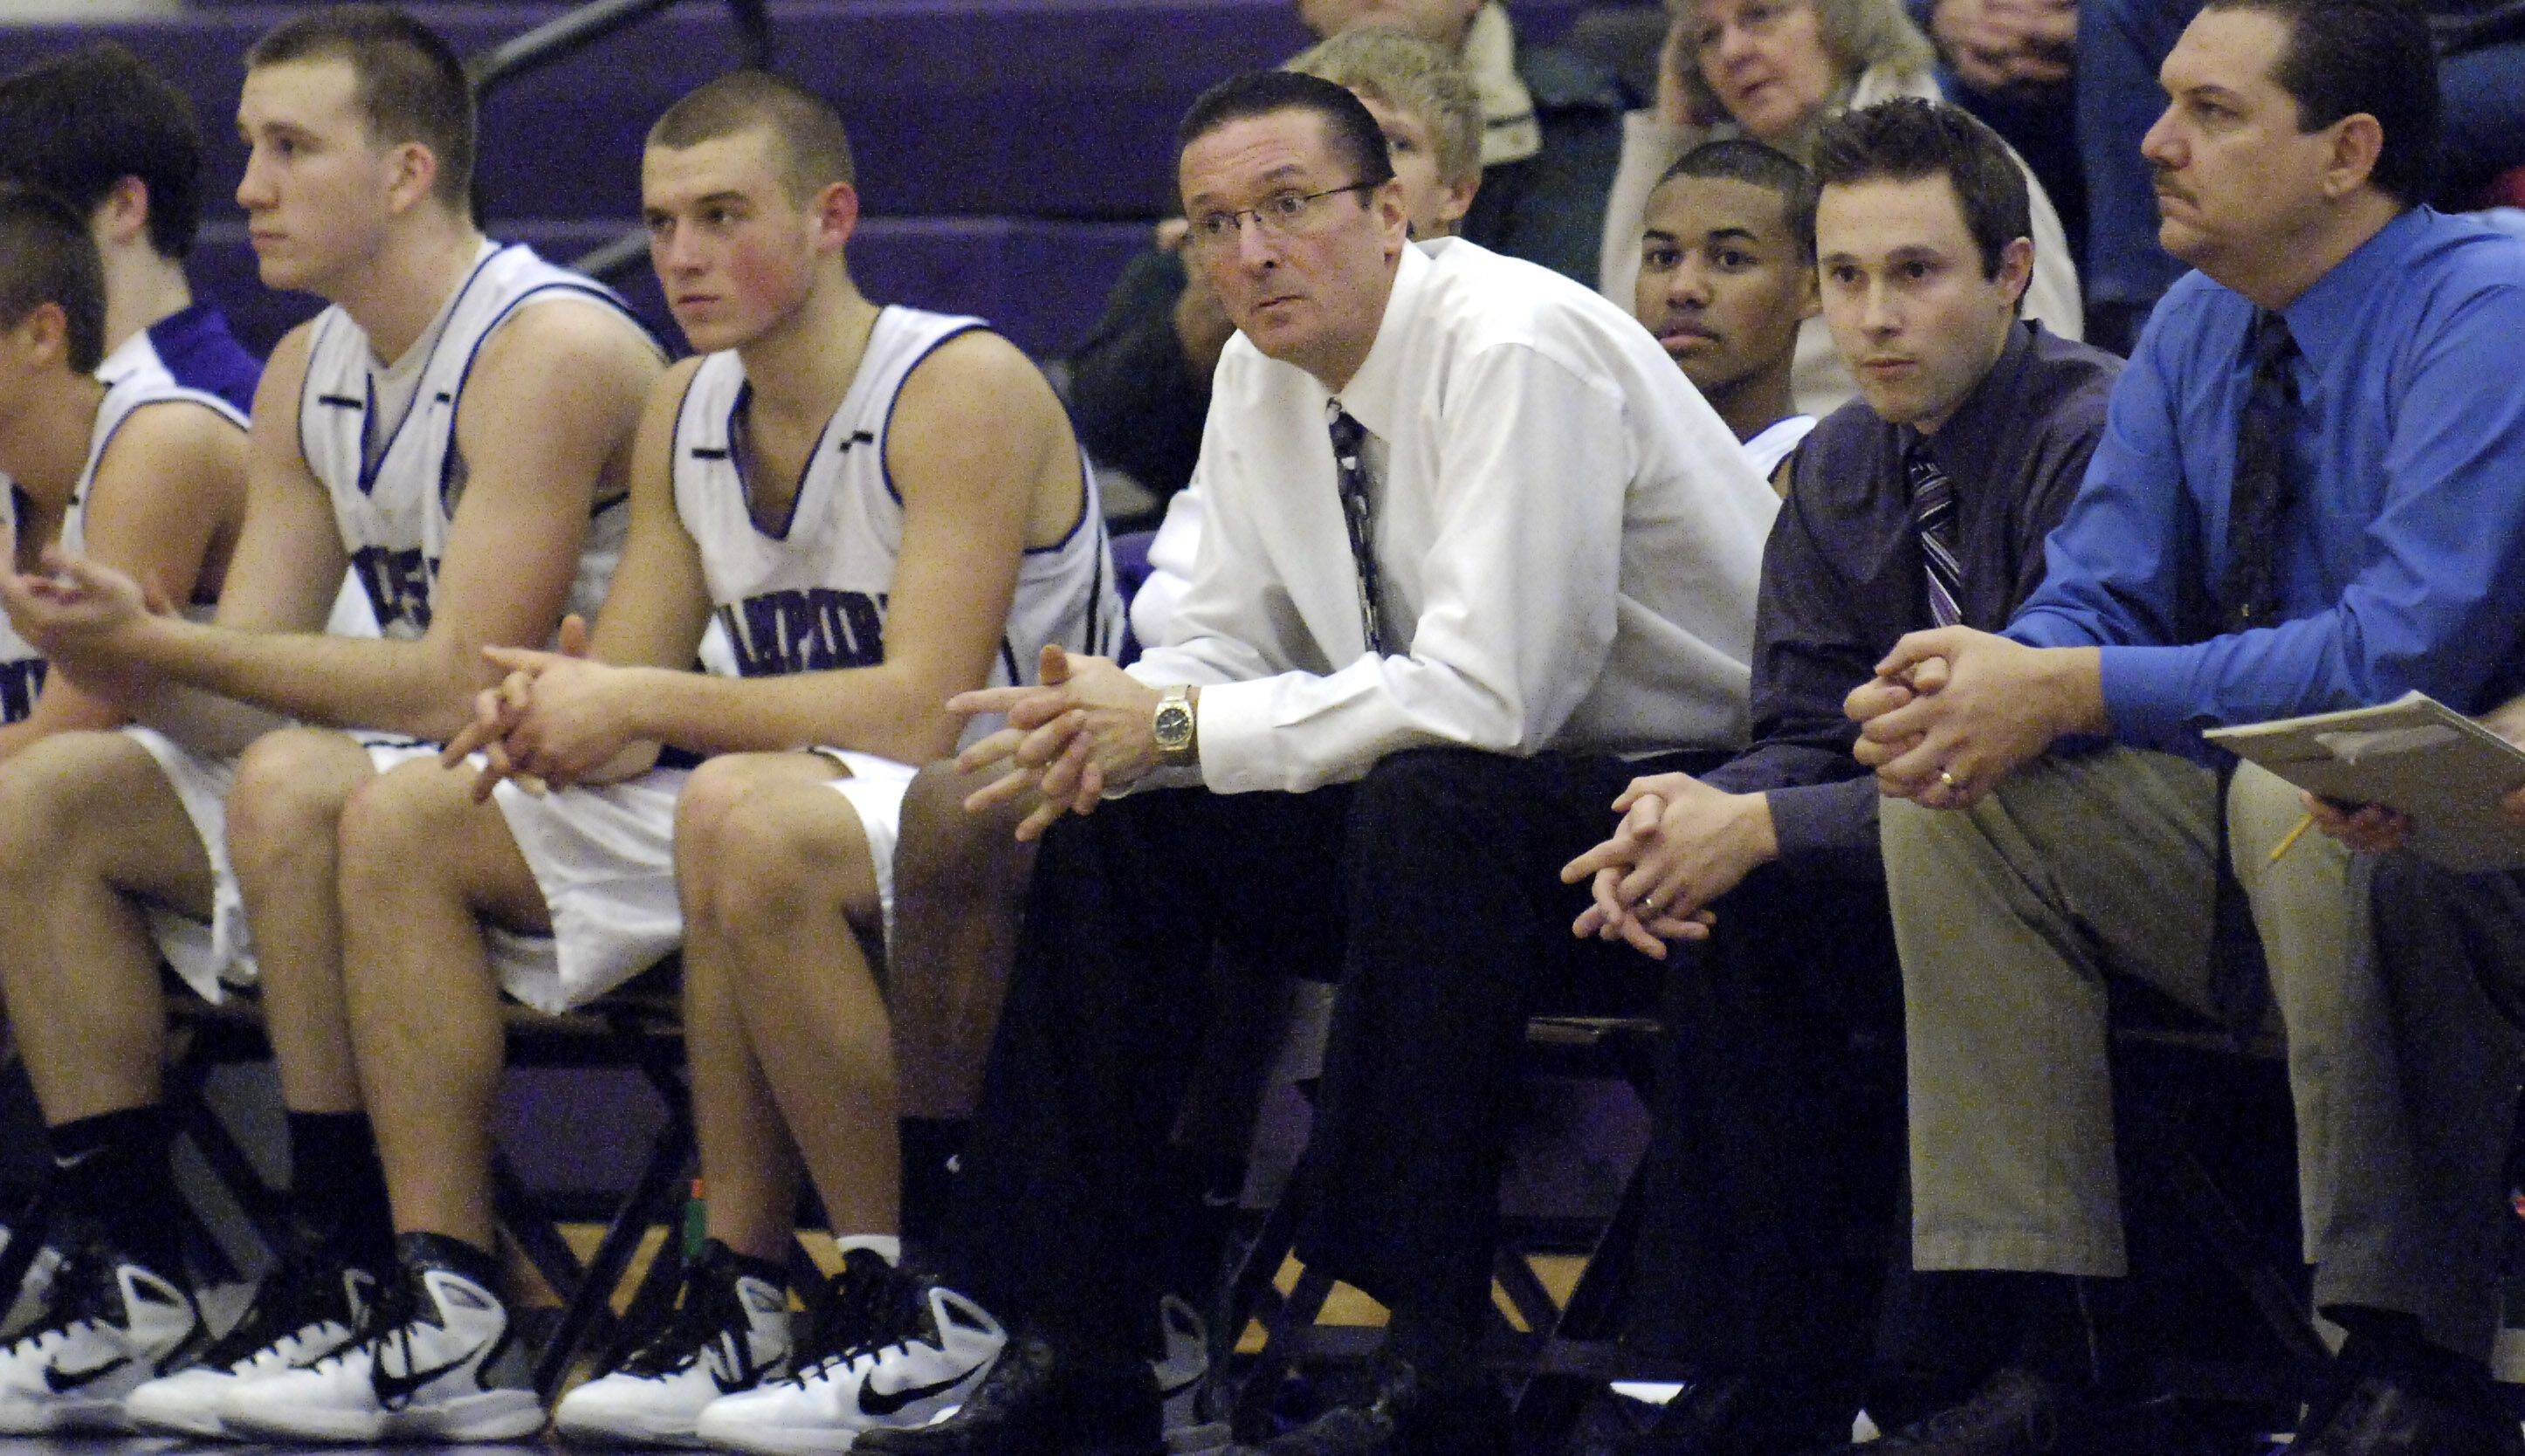 Hampshire head coach Bob Barnett eyes his team from the sidelines on Saturday, January 8.